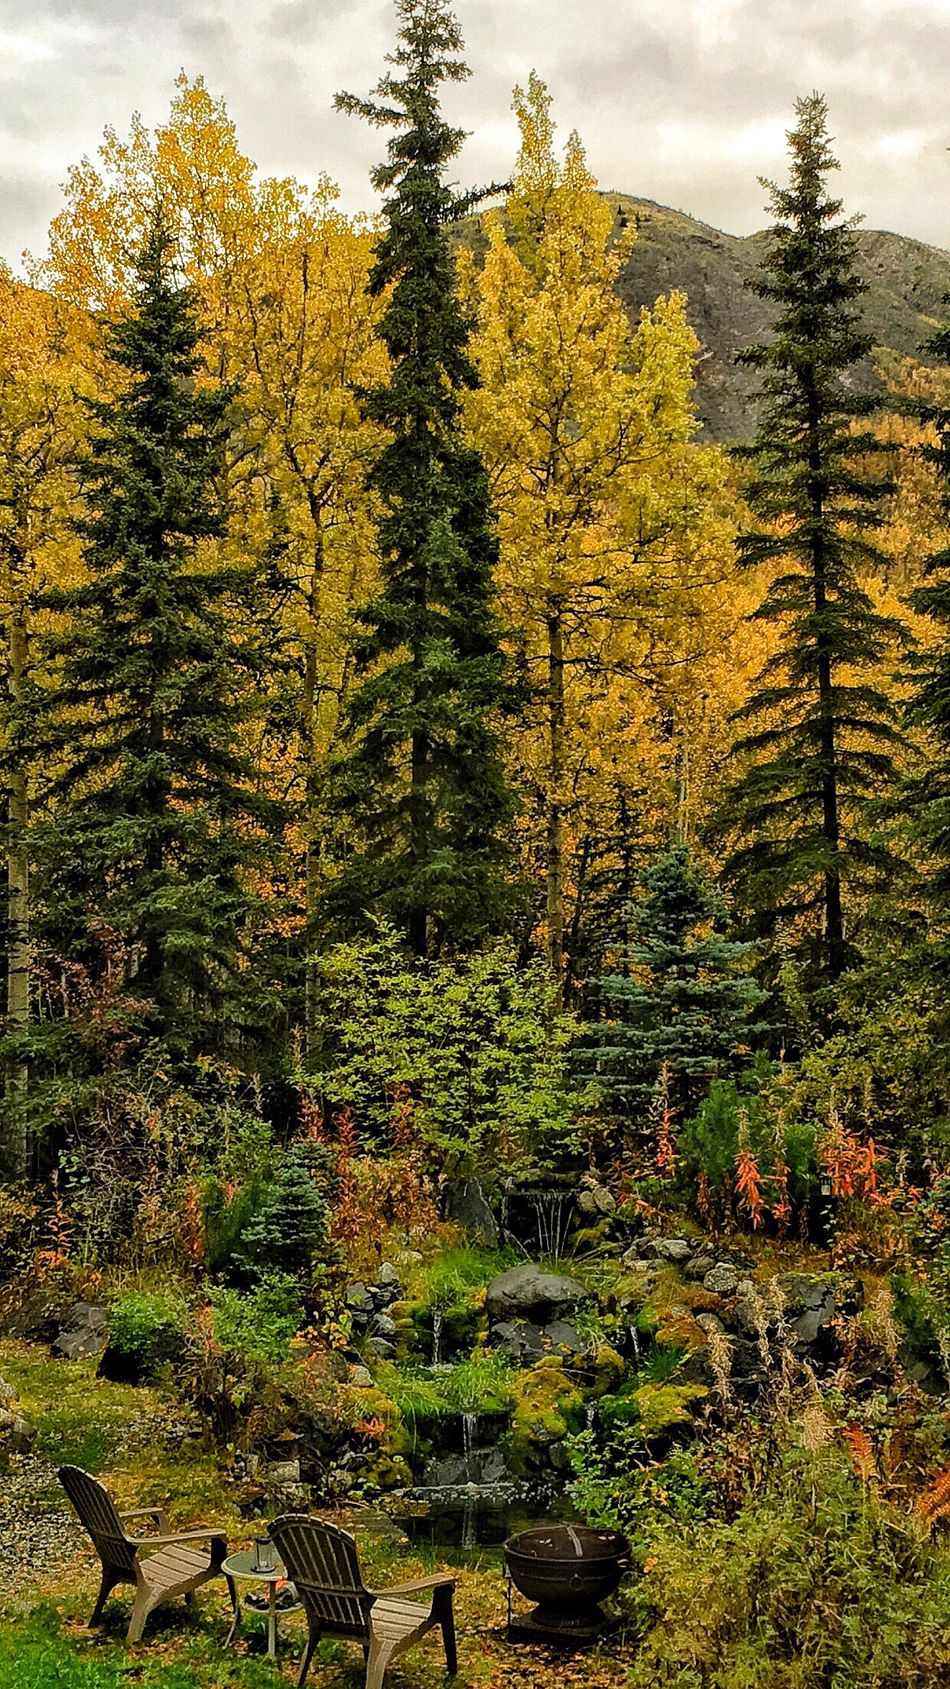 Fabulous Fall Tree Tranquil Scene Tranquility Growth Scenics Nature Beauty In Nature WoodLand Yellow Non-urban Scene Fallen Tree Green Outdoors Day Vibrant Color Green Color Sky Solitude Lush Foliage Majestic Freshness Nature Beauty In Nature Love The Colors Enjoyment